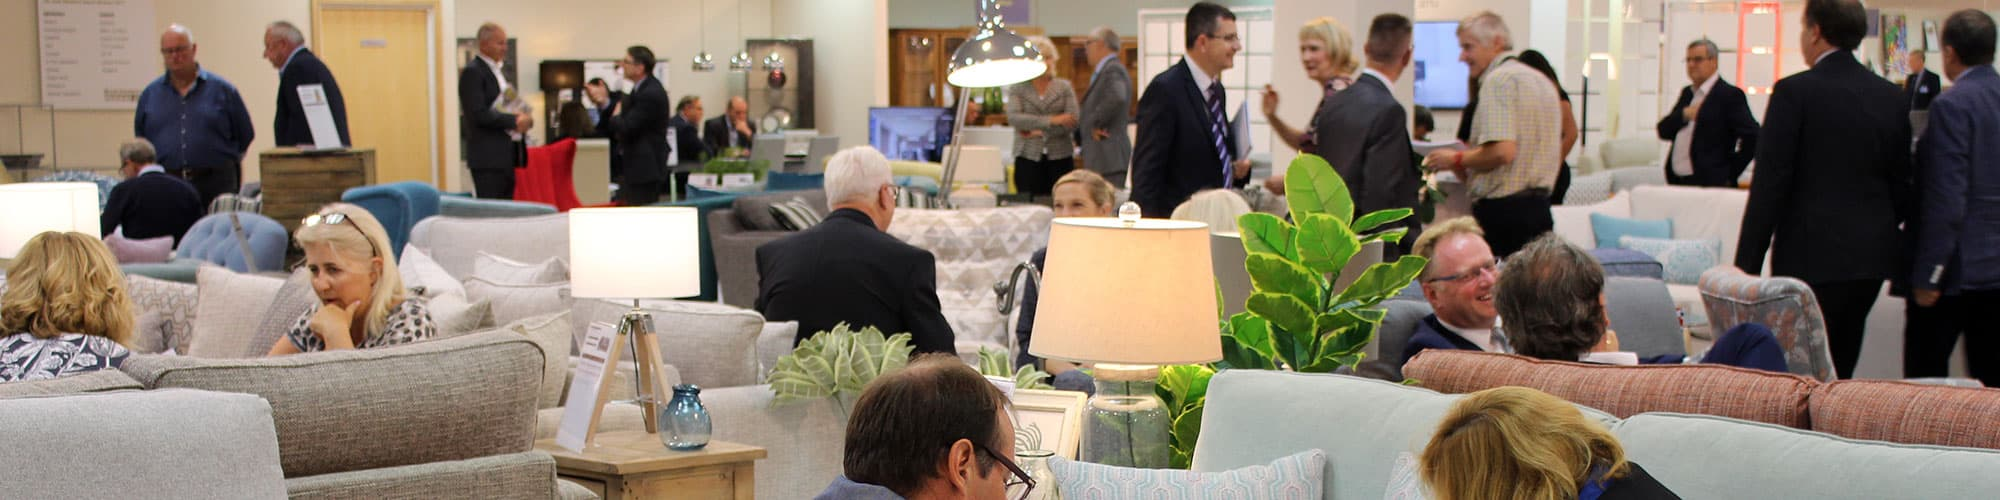 AIS host a number of furniture shows througout the year